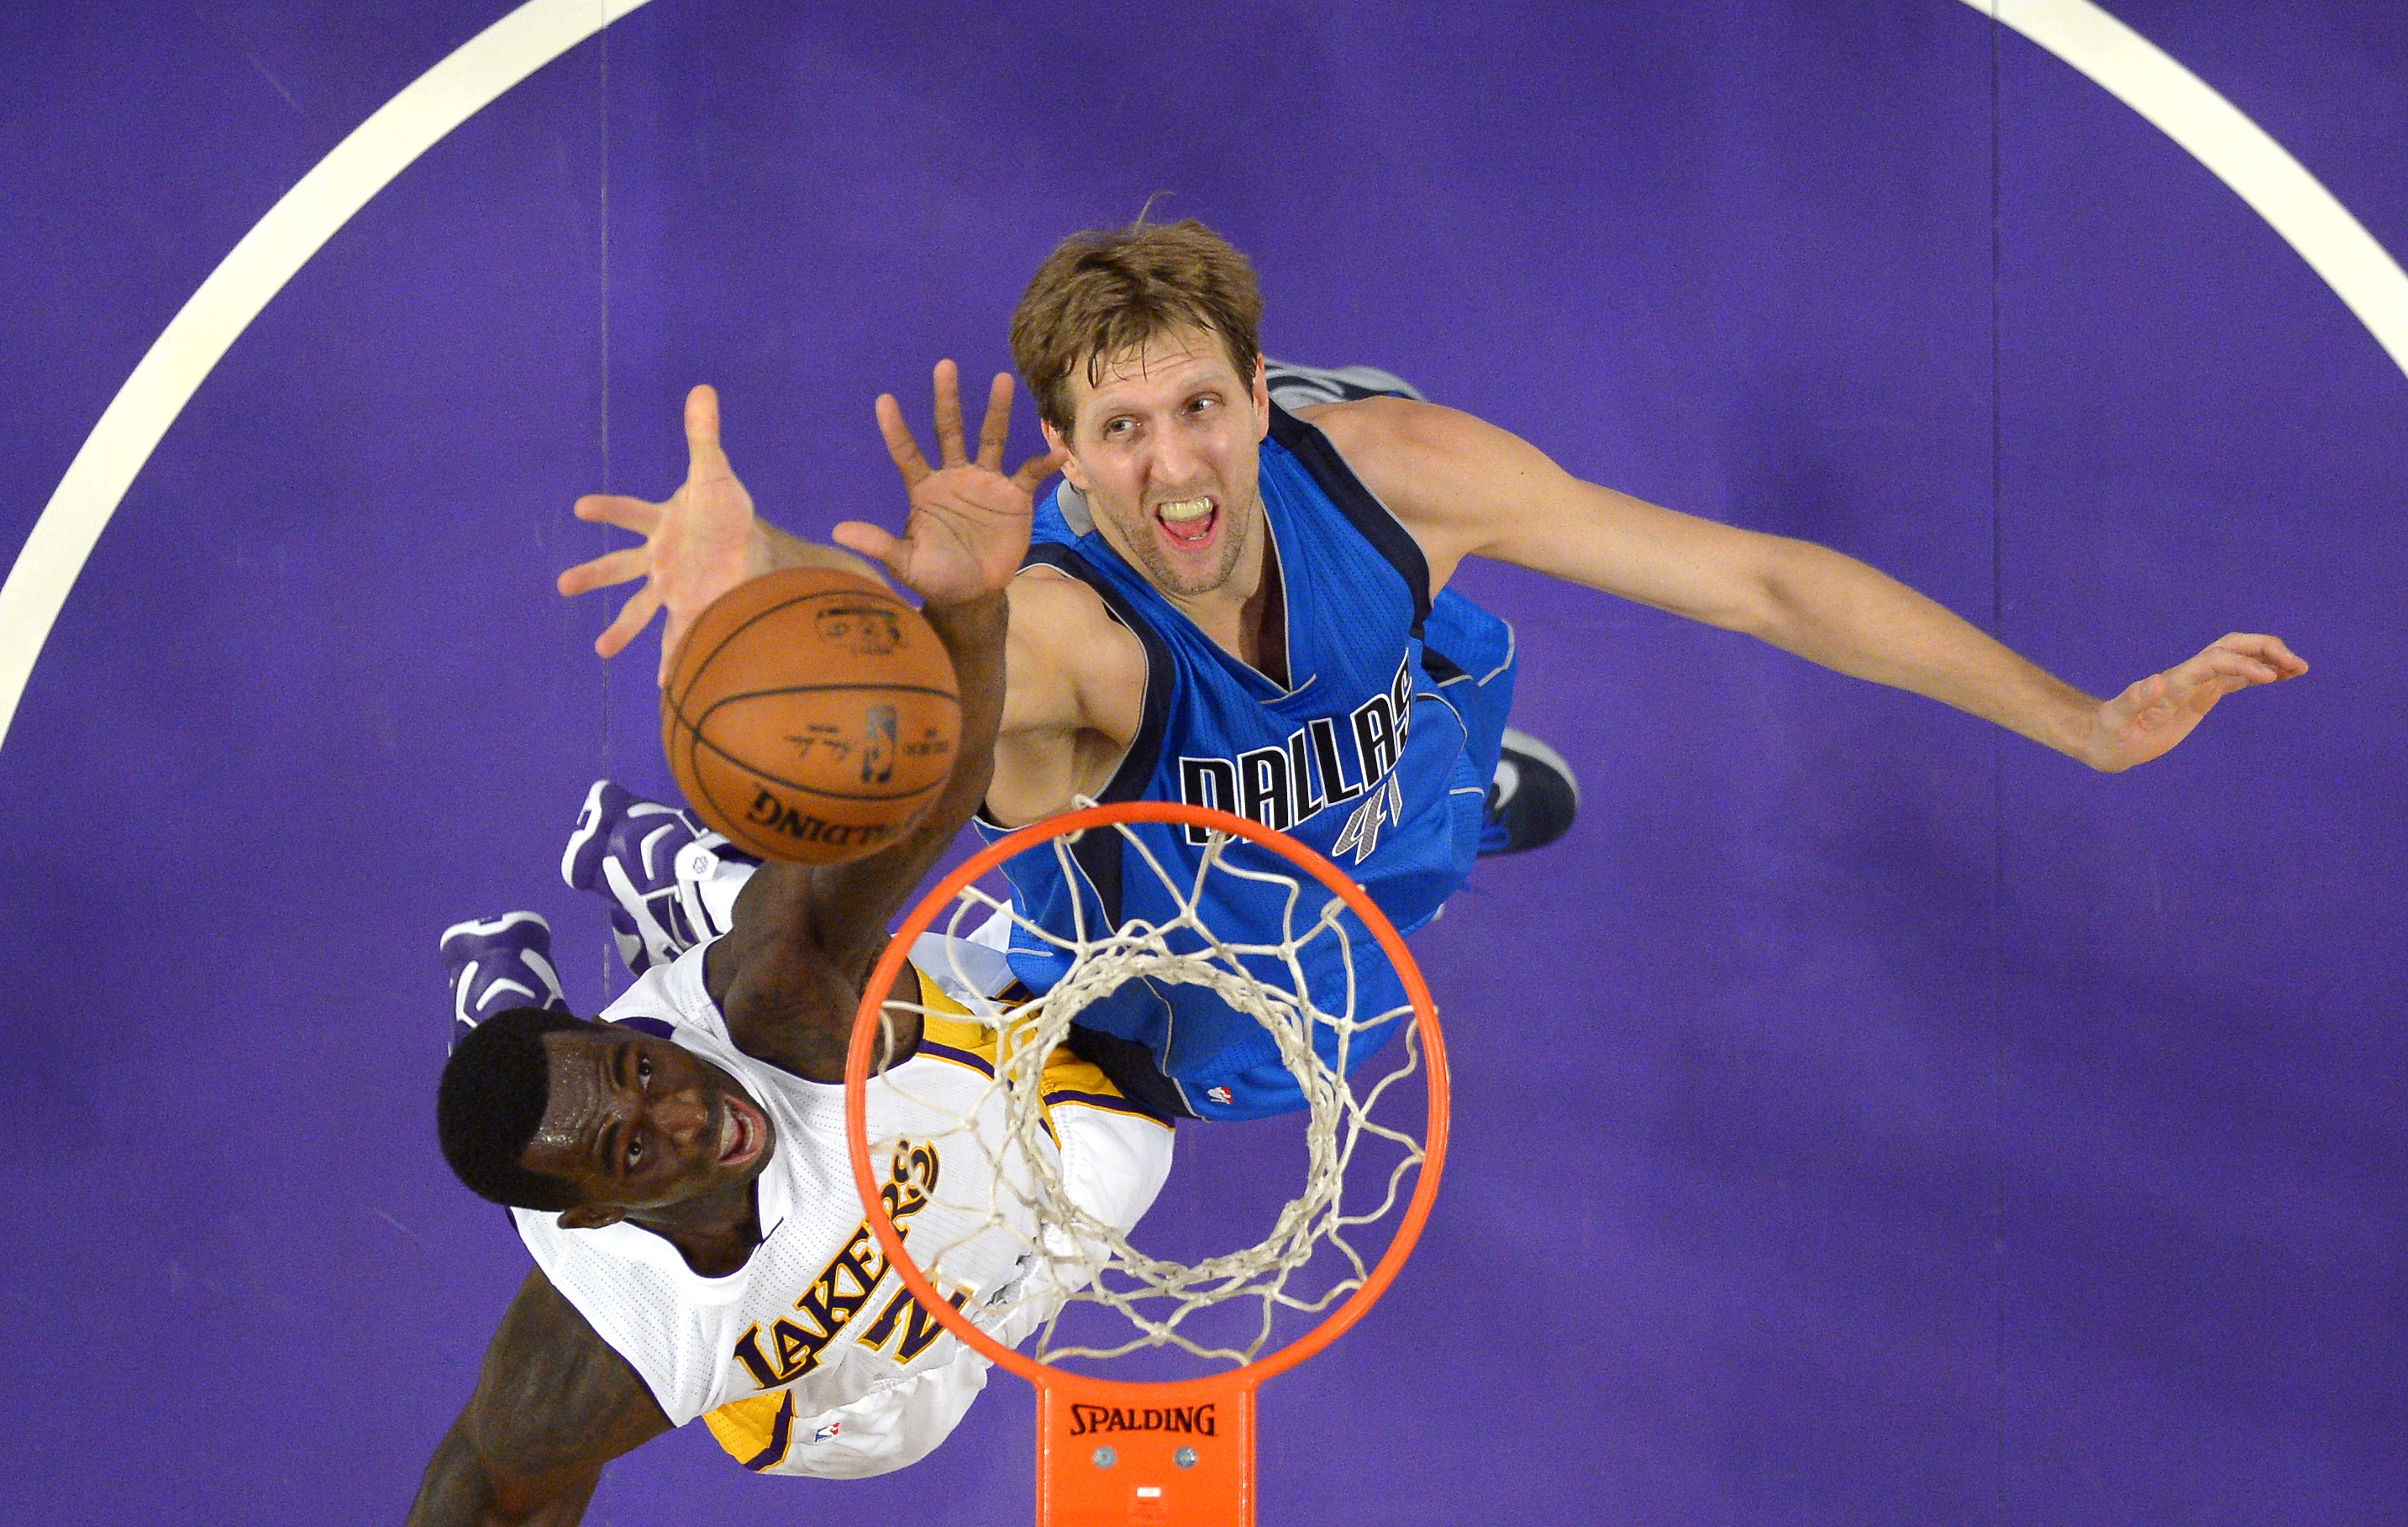 Los Angeles Lakers forward Brandon Bass, left and Dallas Mavericks forward Dirk Nowitzki, of Germany, battle for a rebound during the first half of an NBA basketball game, Sunday, Nov. 1, 2015, in Los Angeles. (AP Photo/Mark J. Terrill)